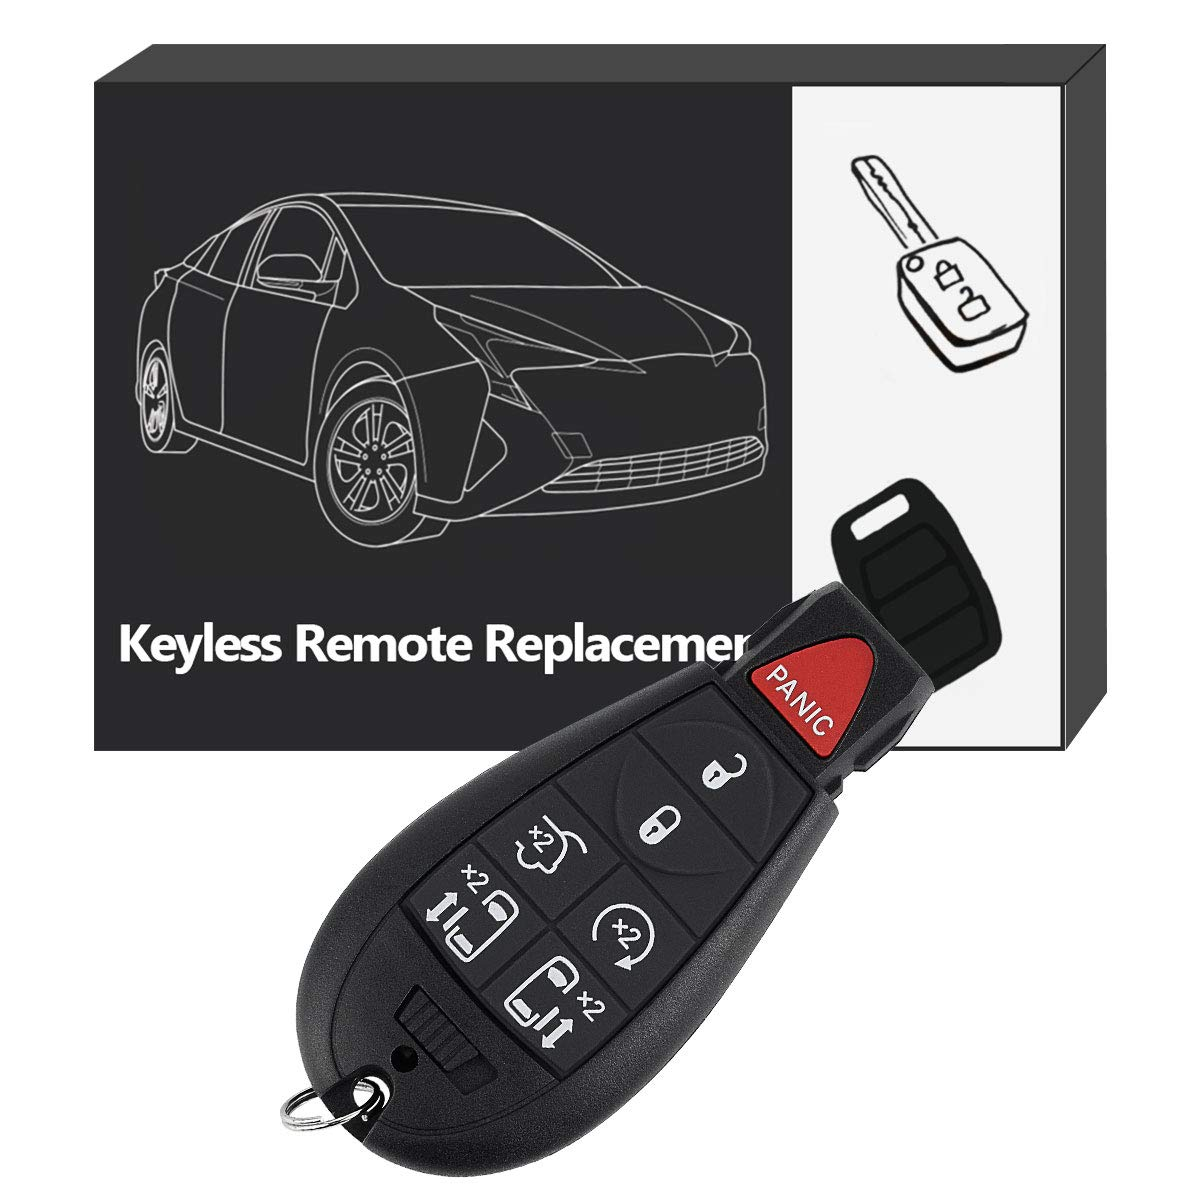 YITAMOTOR Car Key Fob Compatible for Dodge Grand Caravan 2008 2009 2010 2011 2012 2013 2014 Keyless Remote Entry Control 7-Button